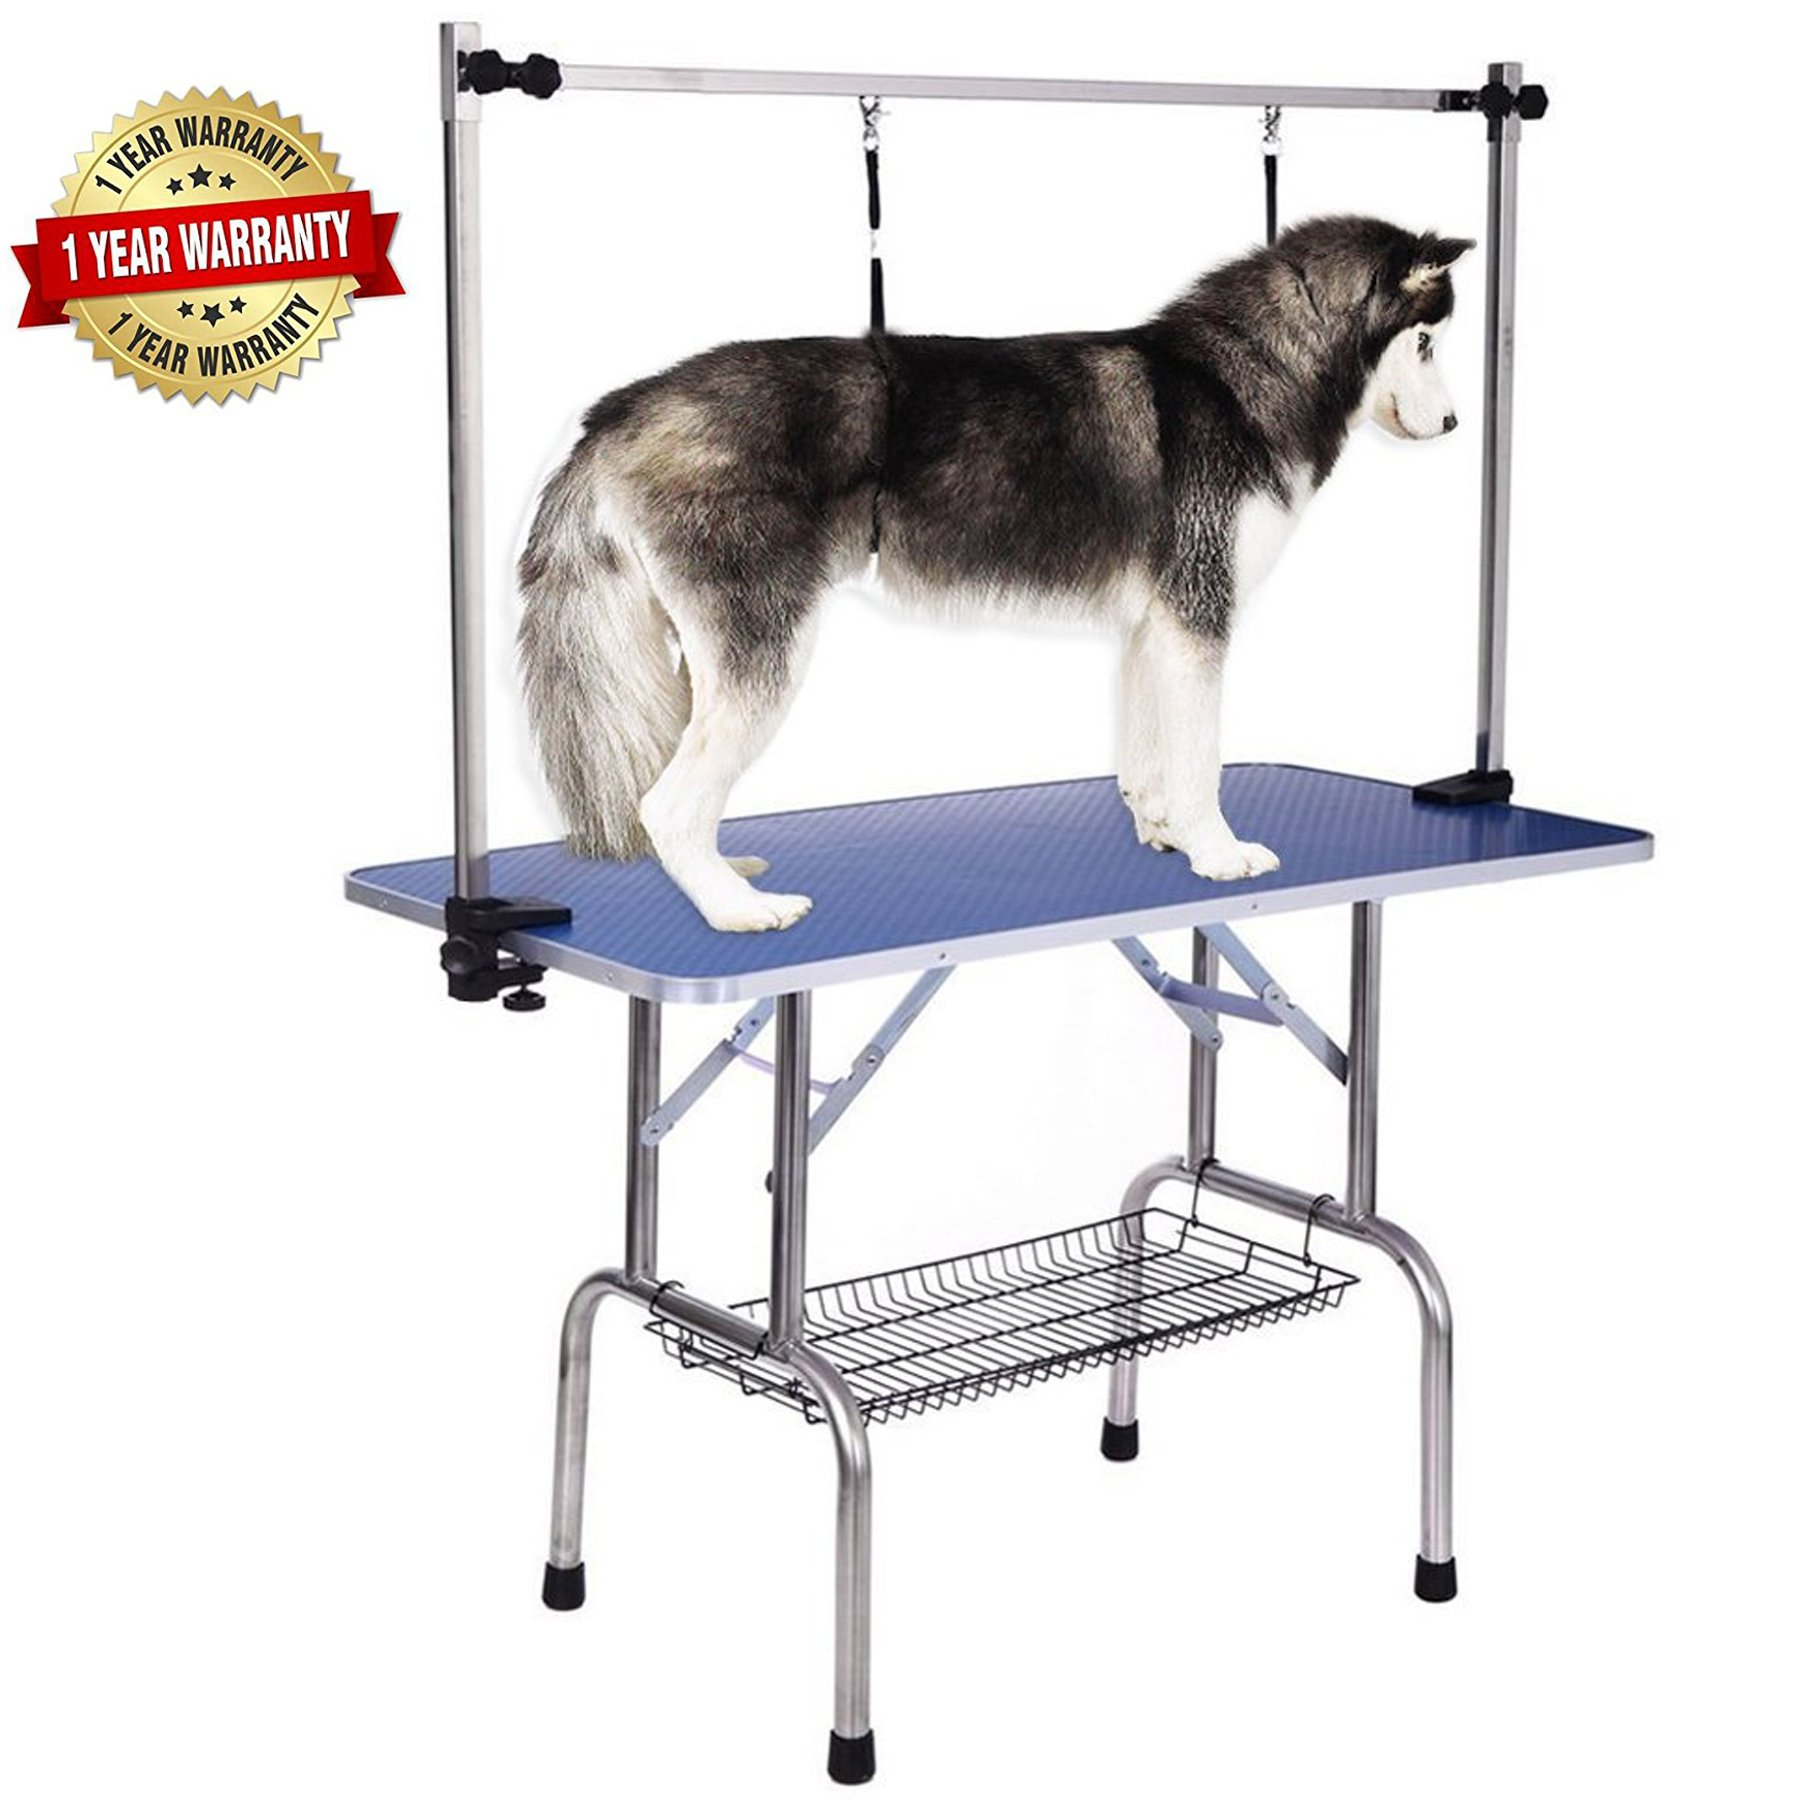 Haige Pet Large Heavy Duty Dog Pets Grooming Table, Adjustable Clamp Overhead Grooming Arm with Double Grooming Loop 36'' by 24''